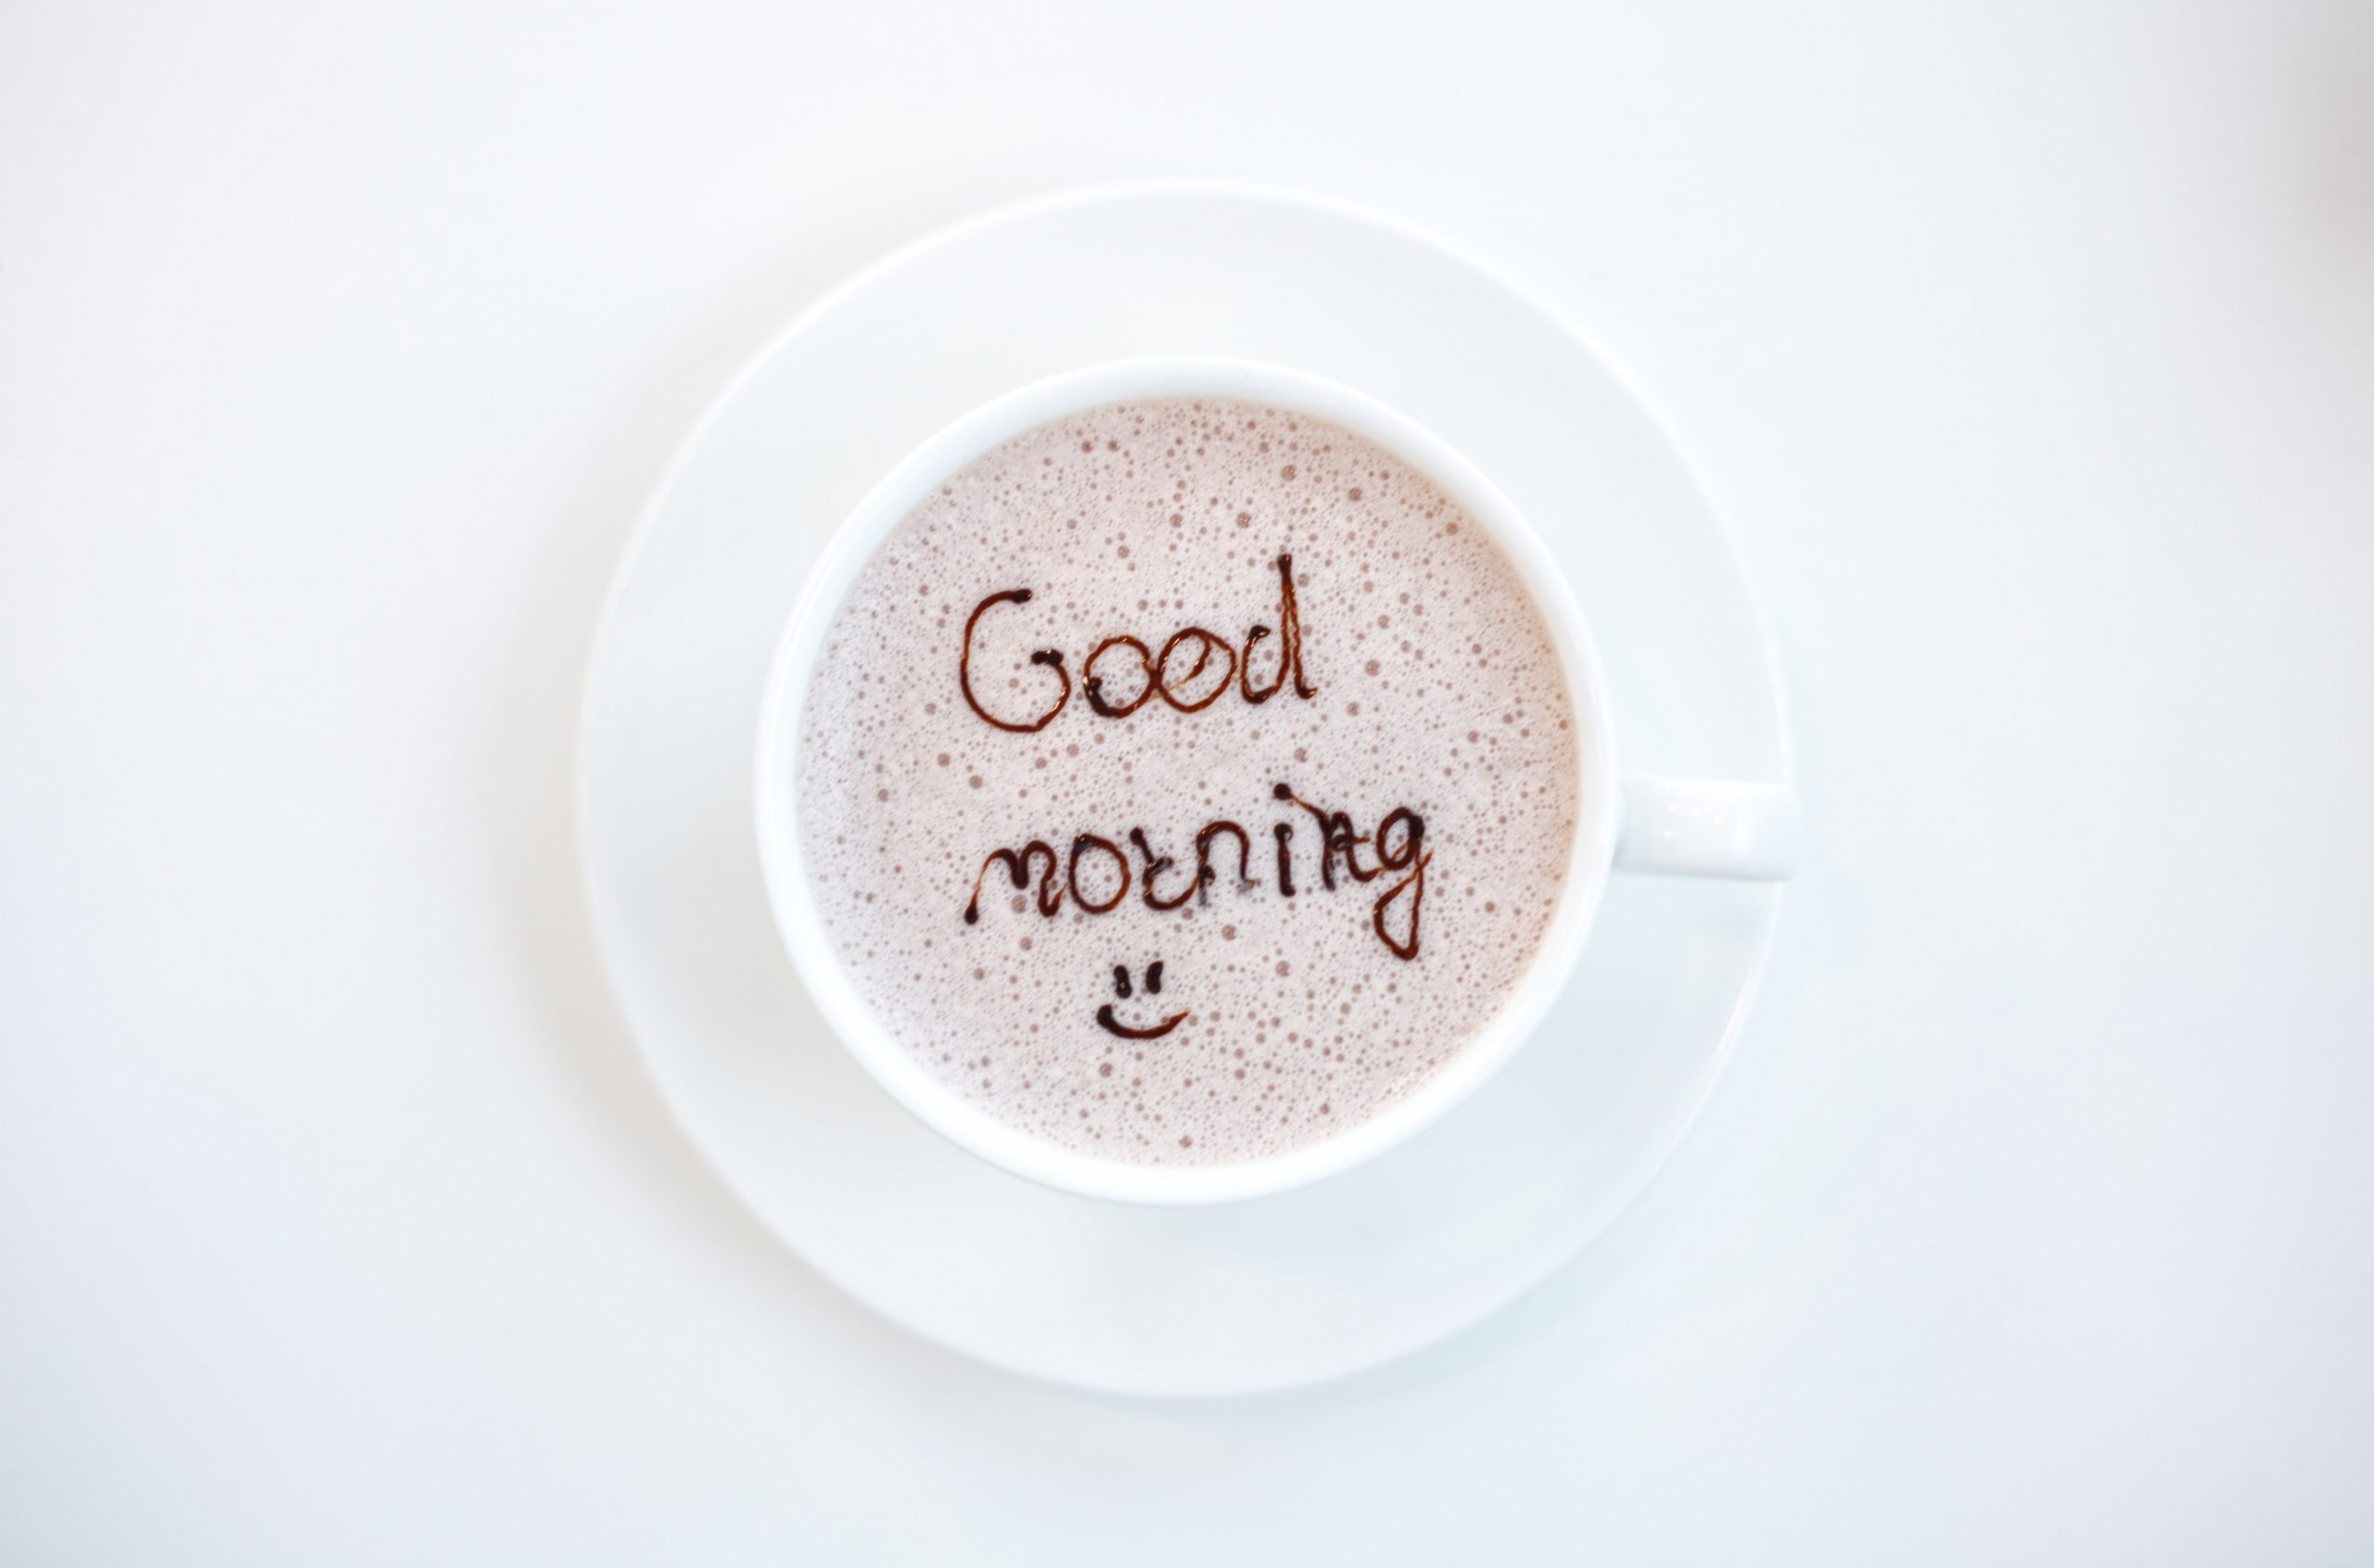 [Best] Good Morning Wishes Messages & Quotes 2020